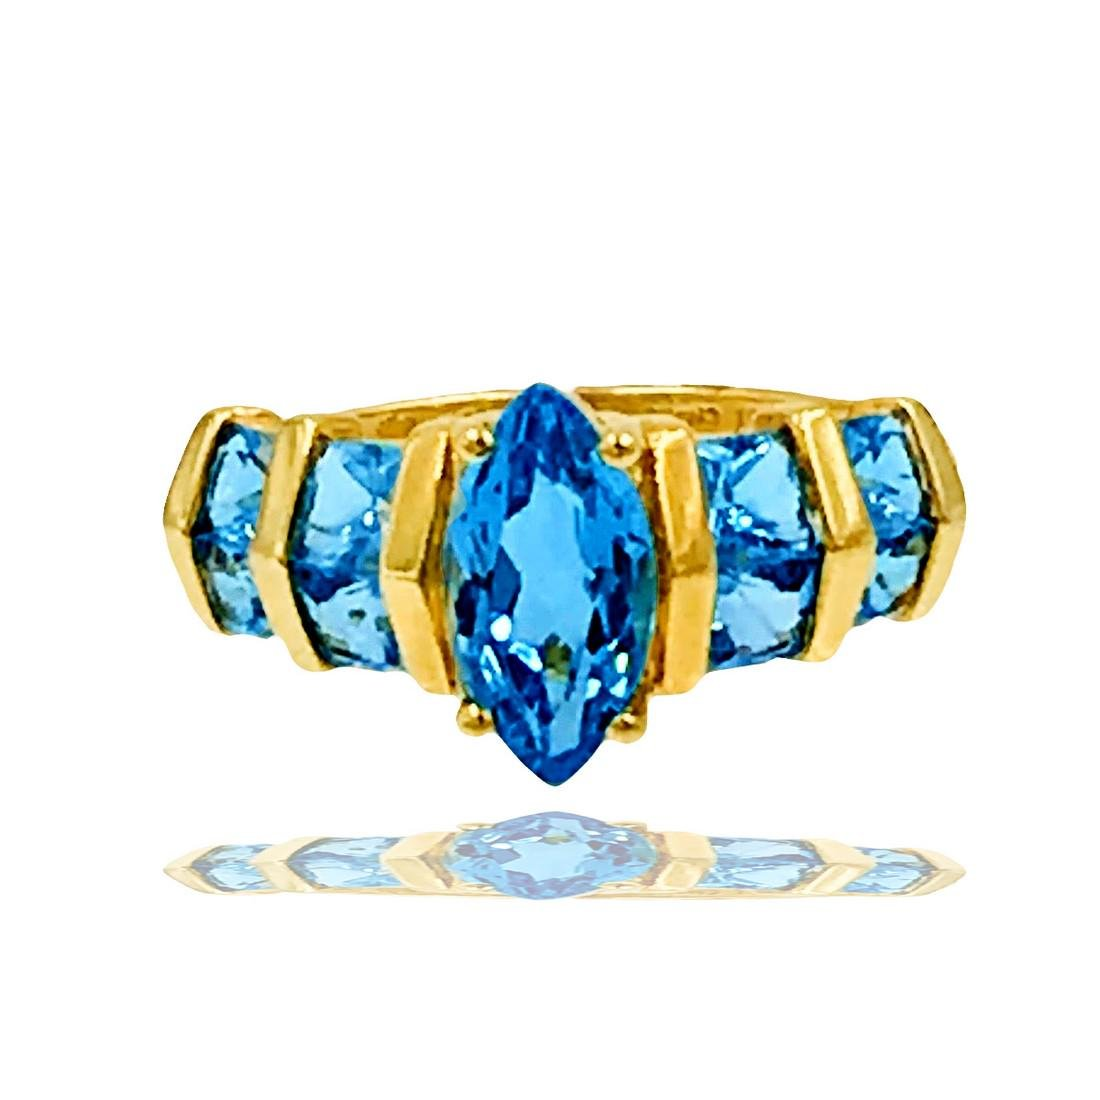 Contemporary, Swiss Blue Topaz ring with channel